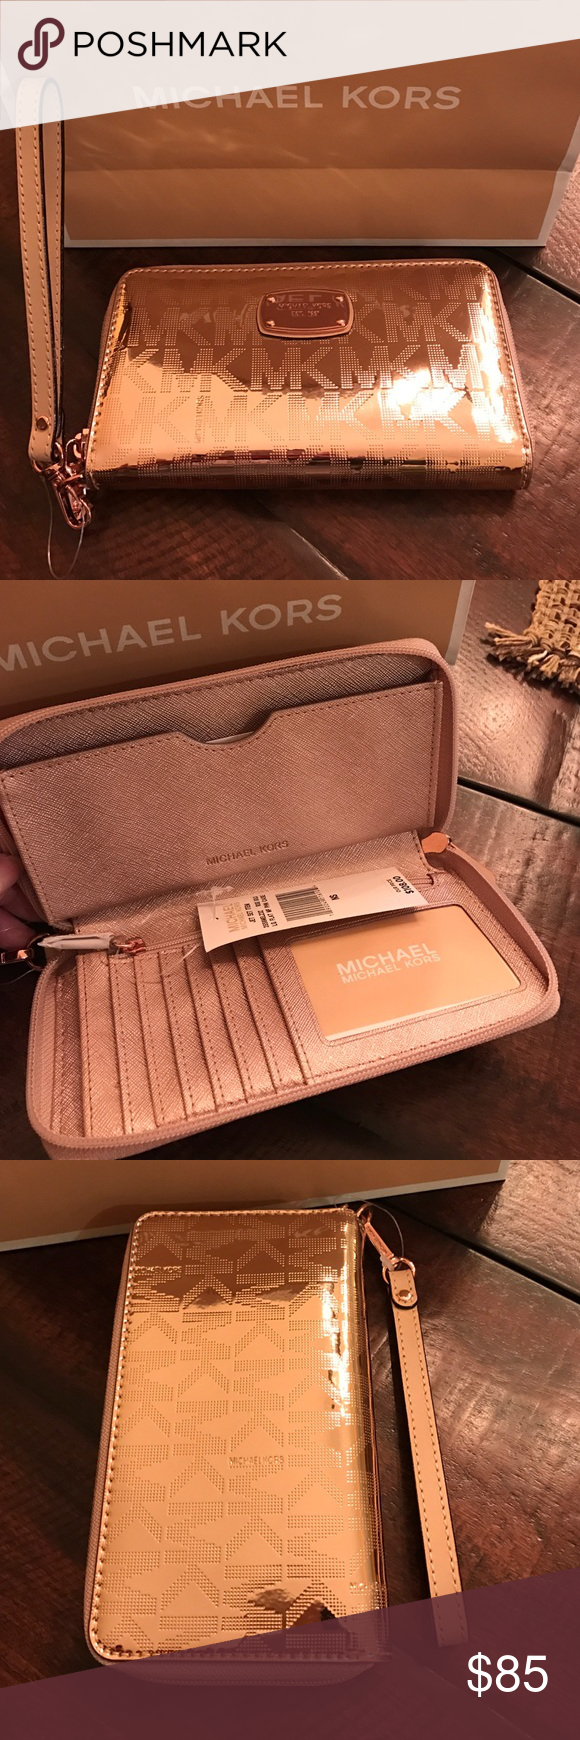 are the michael kors online outlets authentic nfl michael kors wallet new